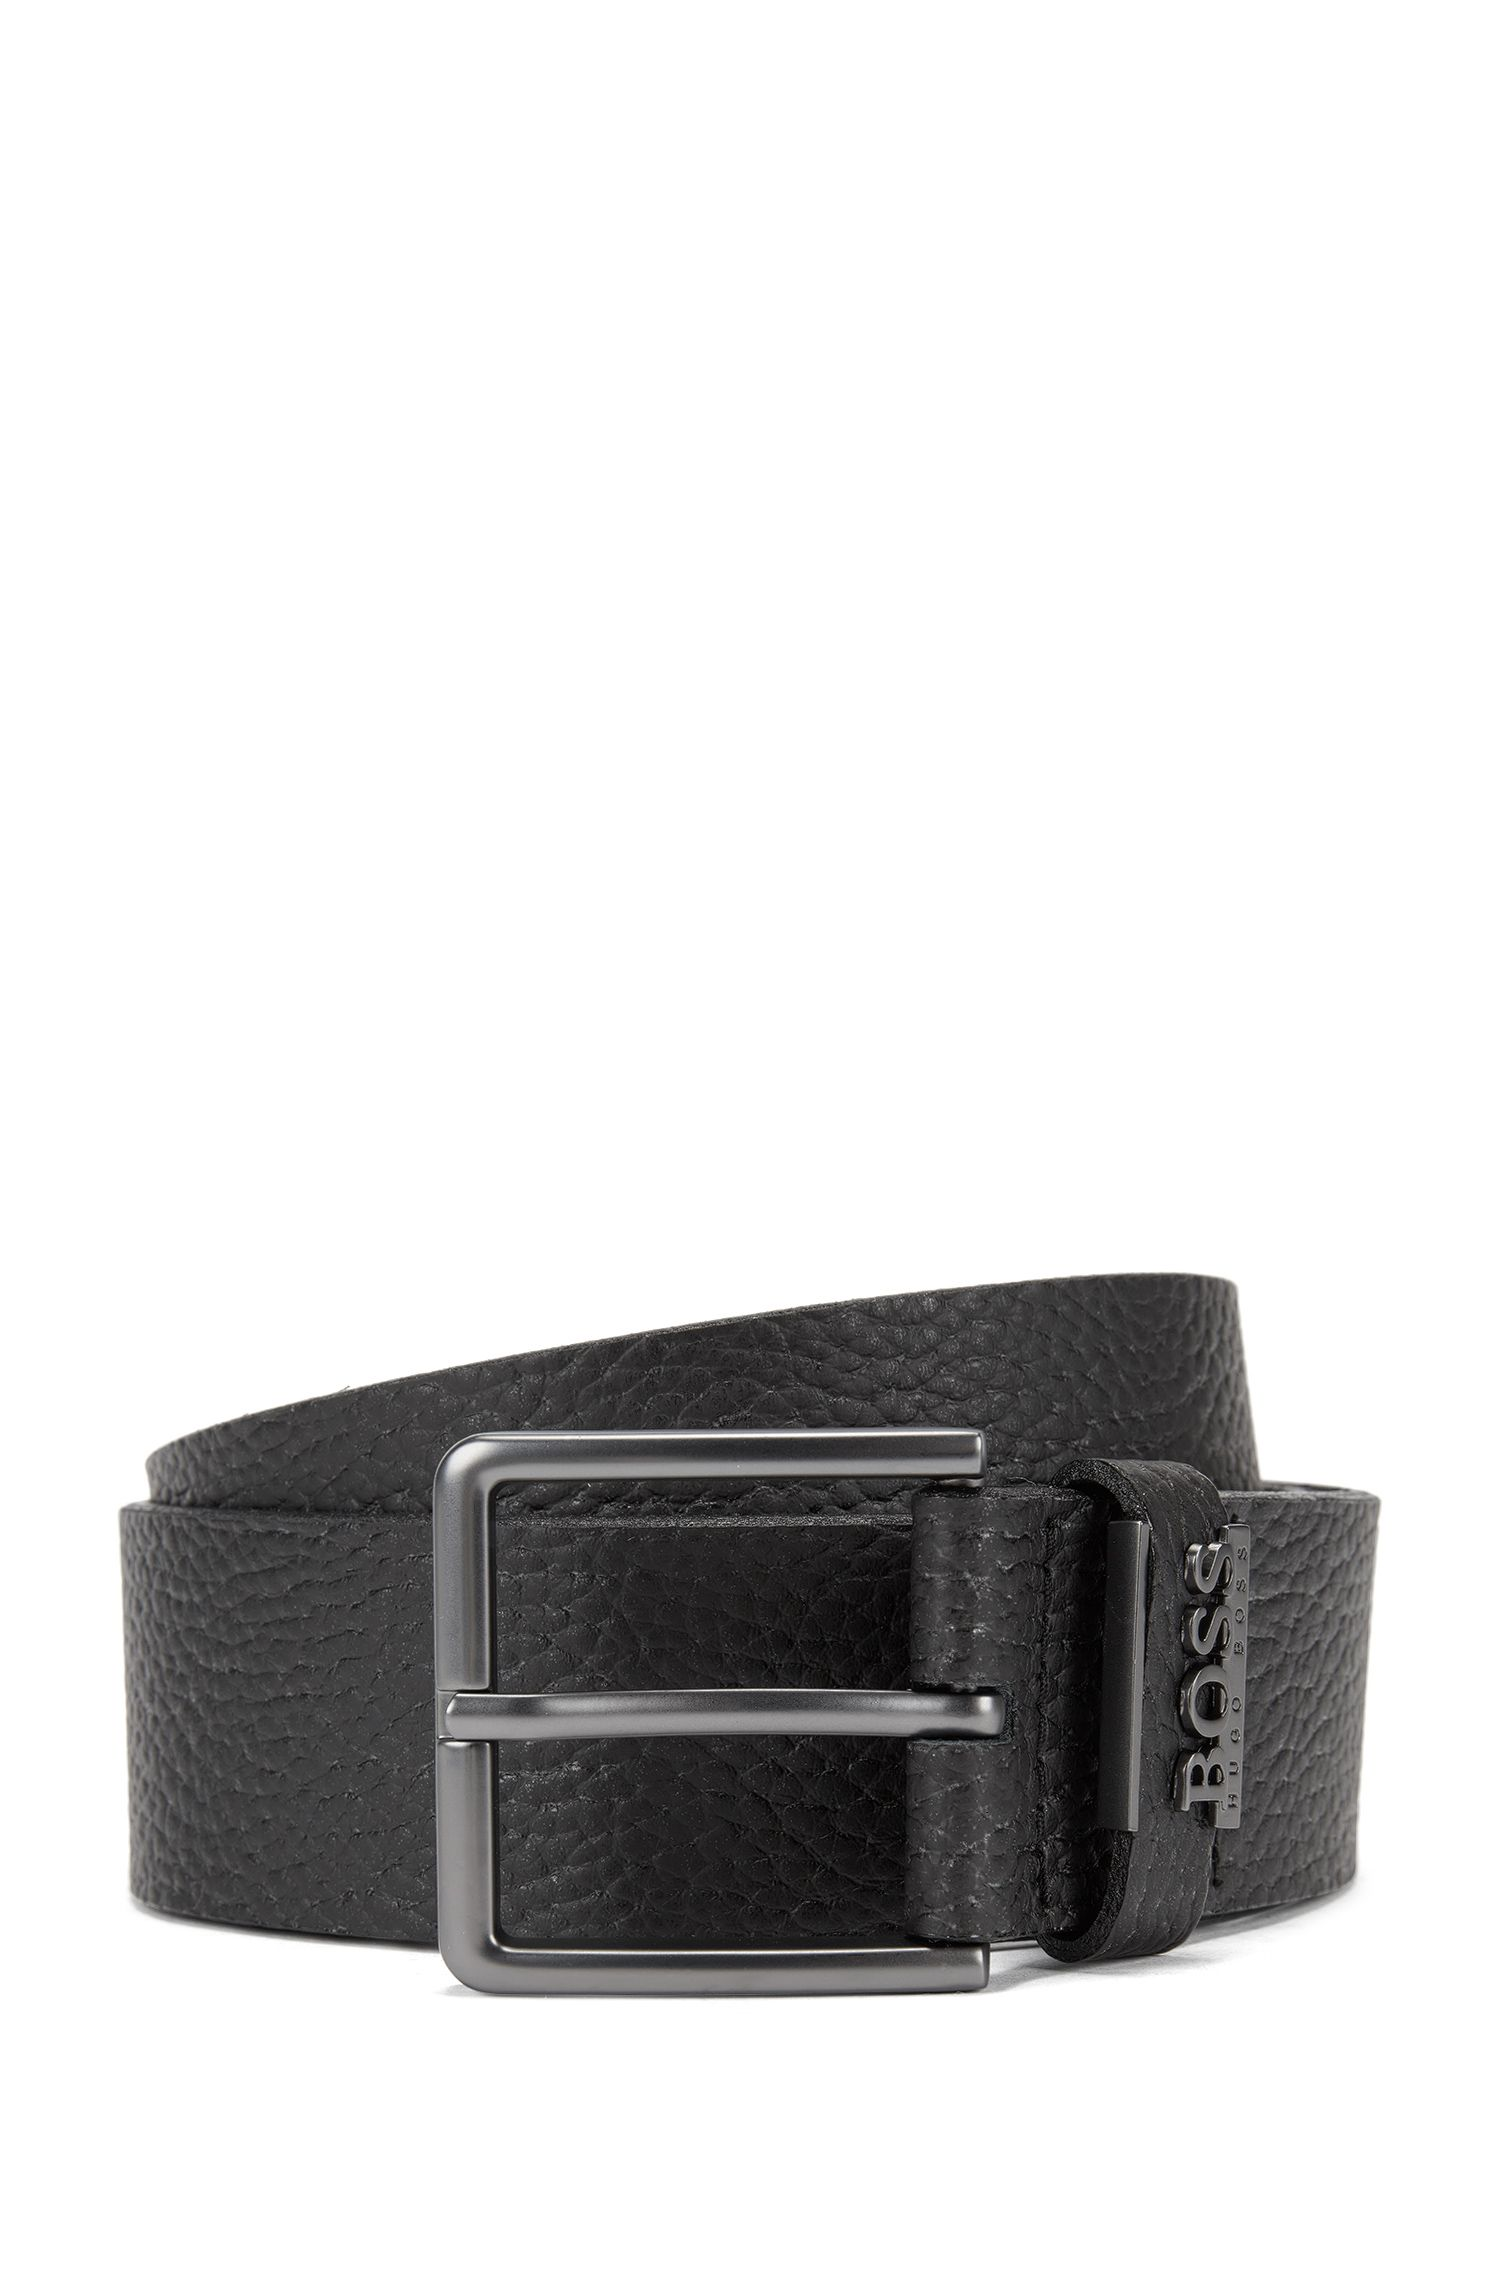 Grained-leather belt with matt gunmetal hardware